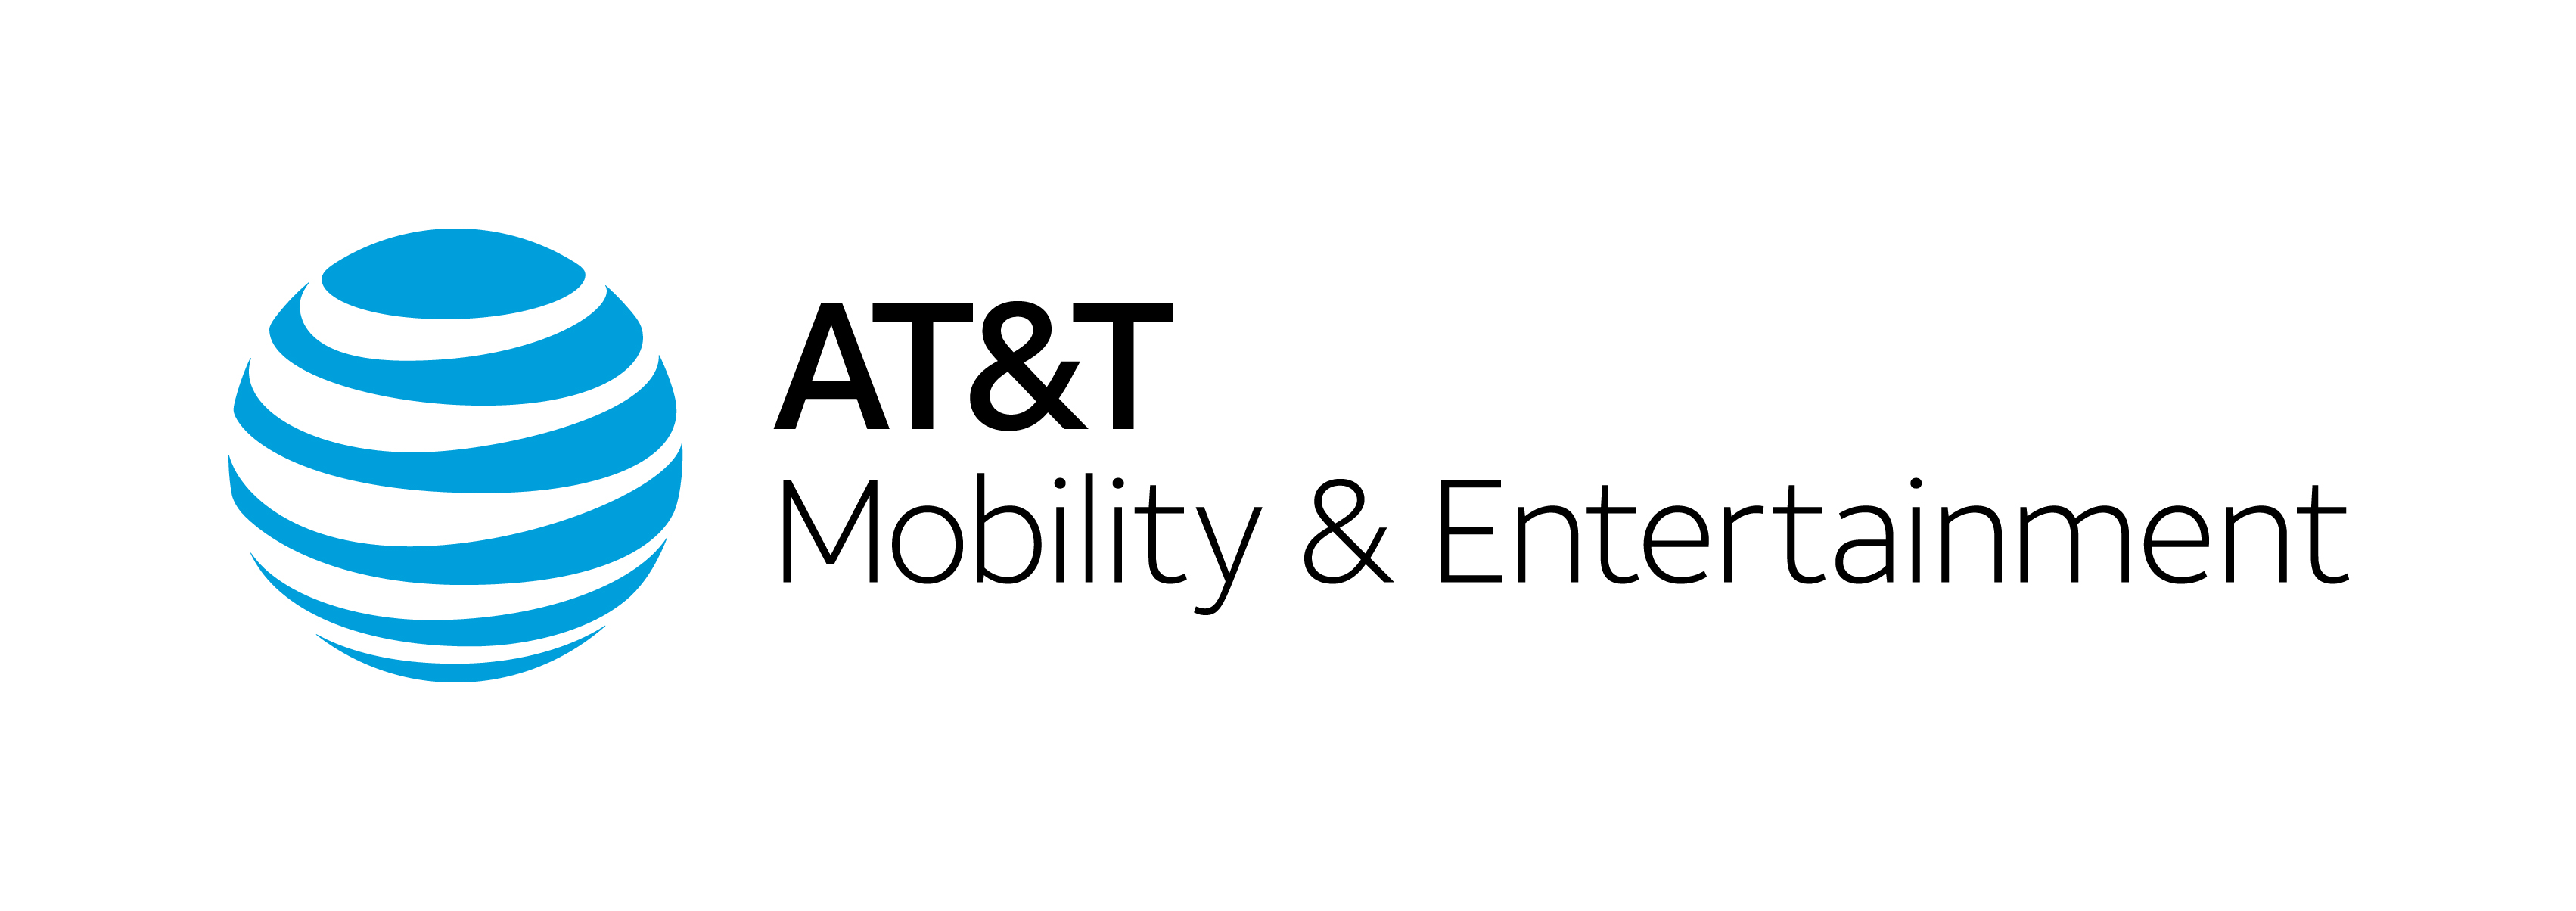 Preferred wordmark when creating AT&T Mobility & Entertainment digital applications